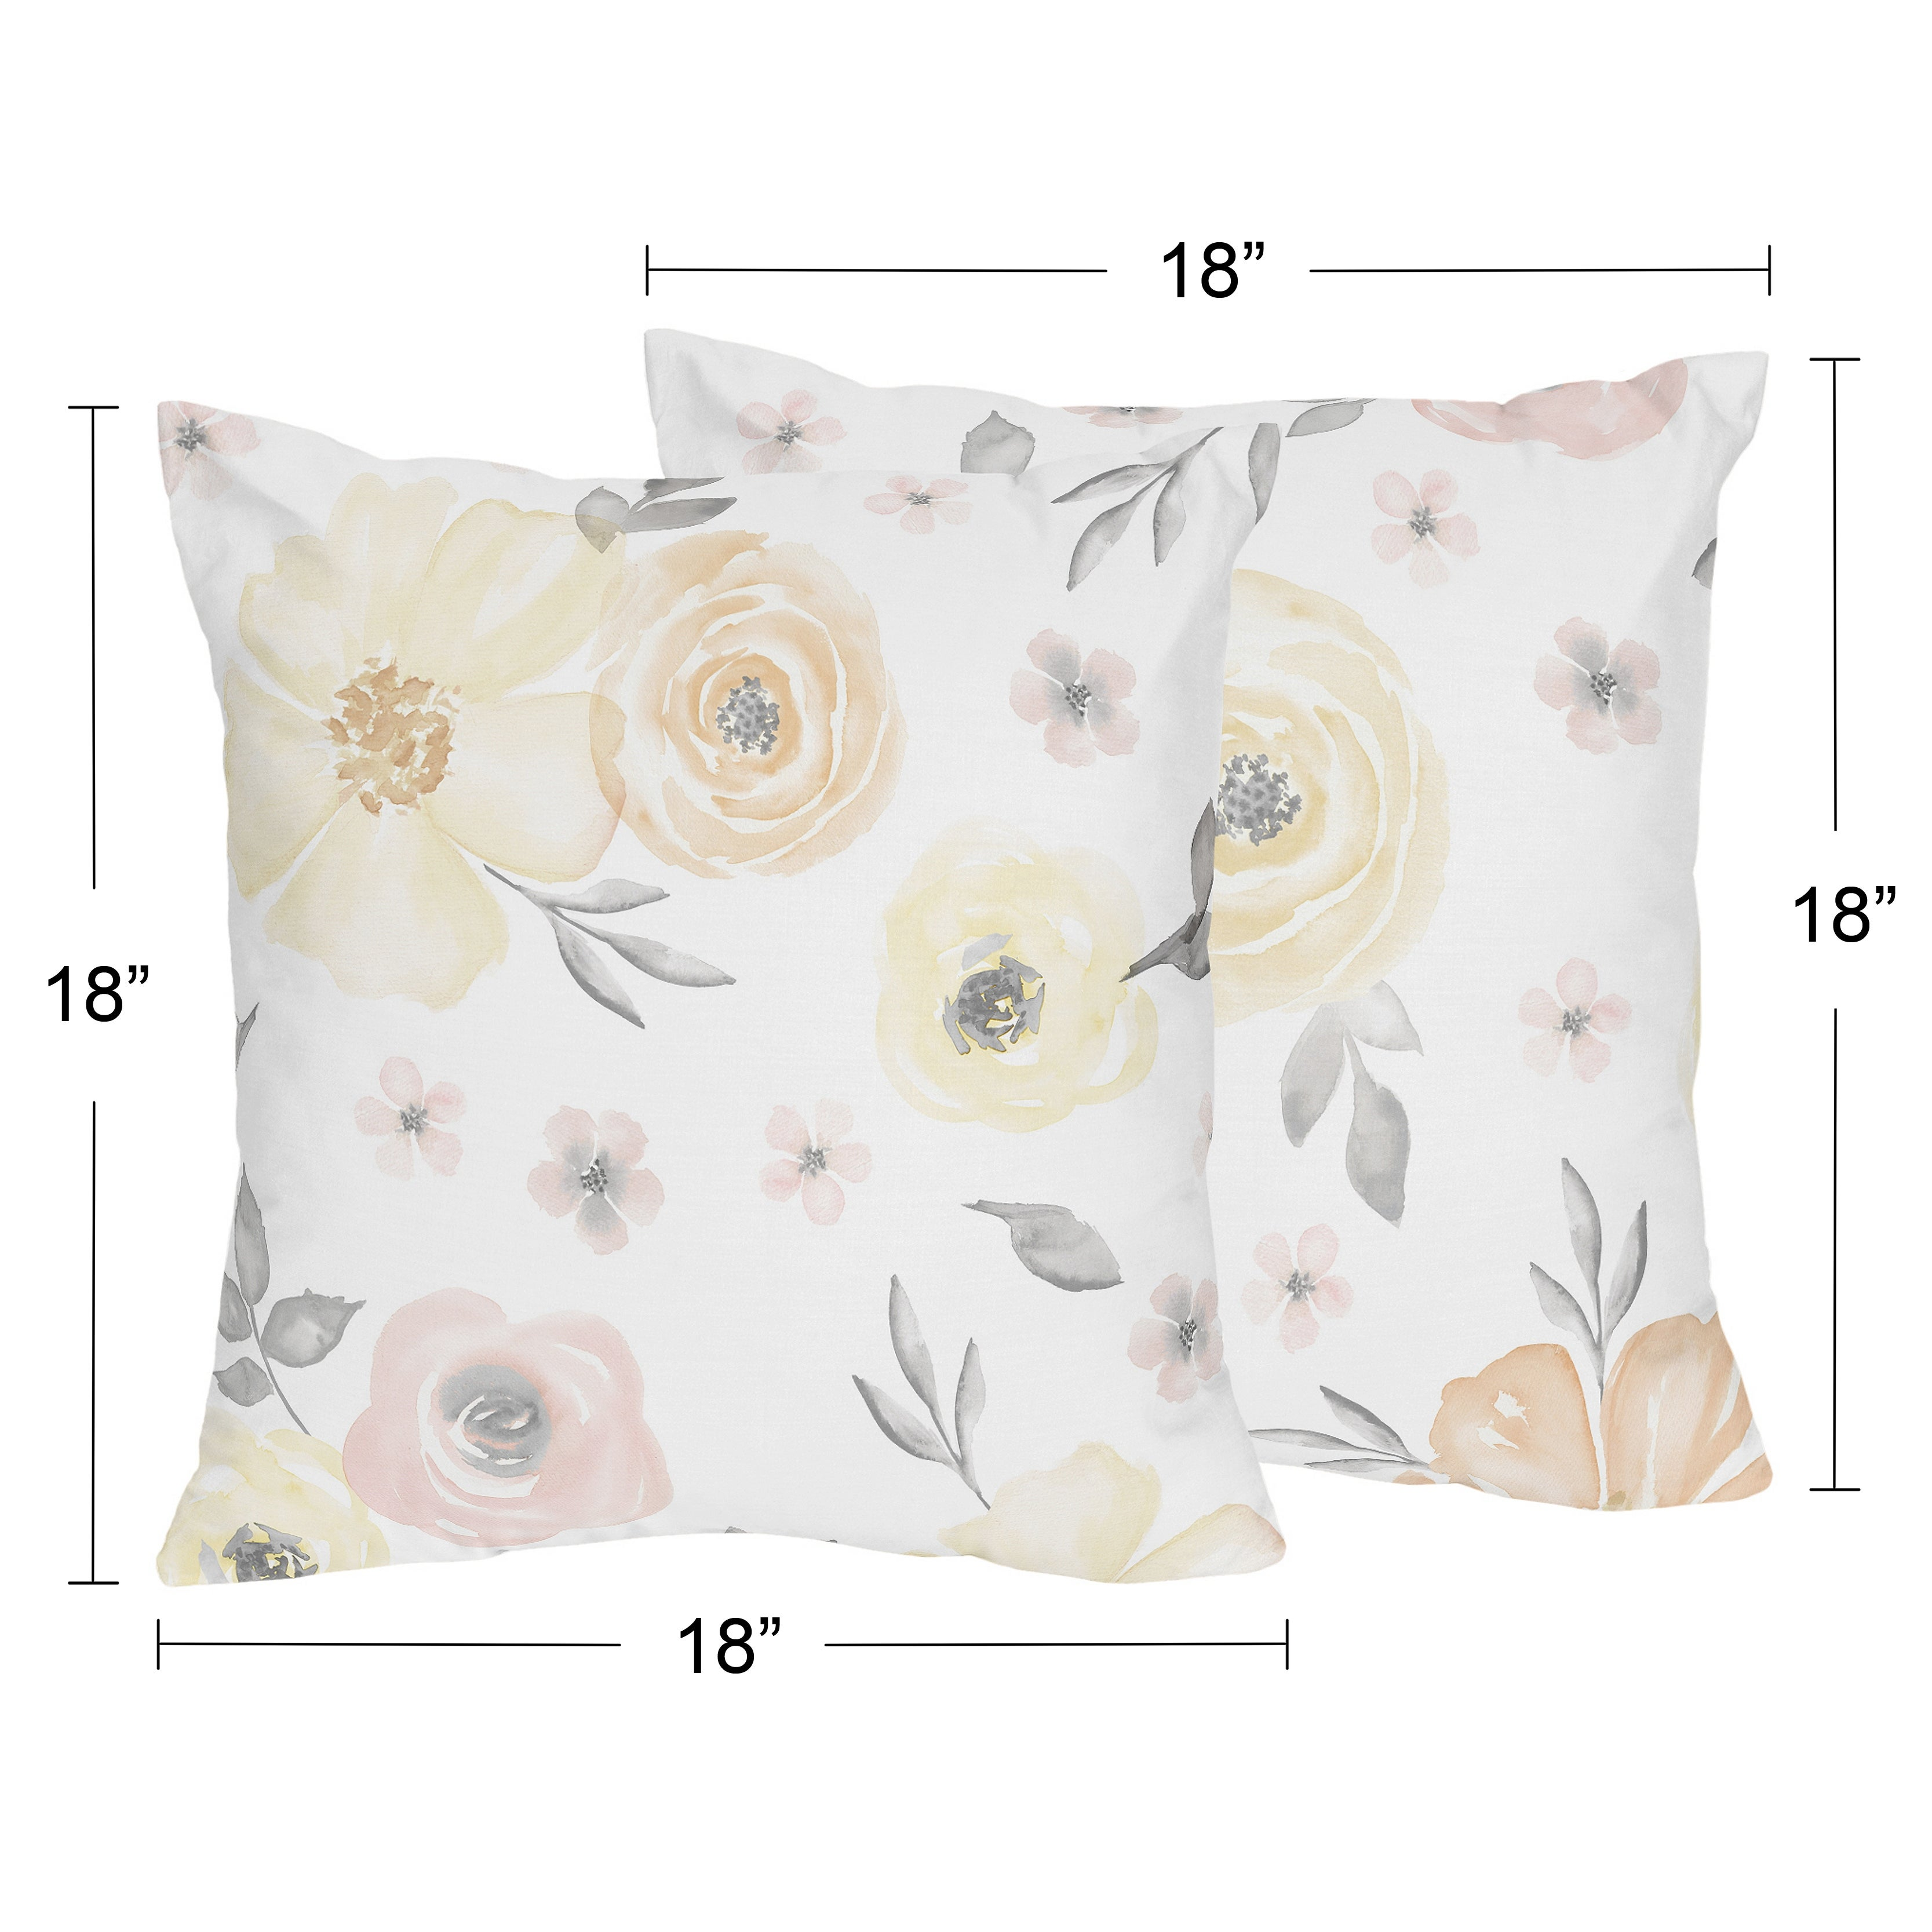 Yellow Pink Watercolor Floral 18in Decorative Accent Throw Pillows Set Of 2 Blush Peach Grey Shabby Chic Rose Flower Farmhouse Overstock 32583906